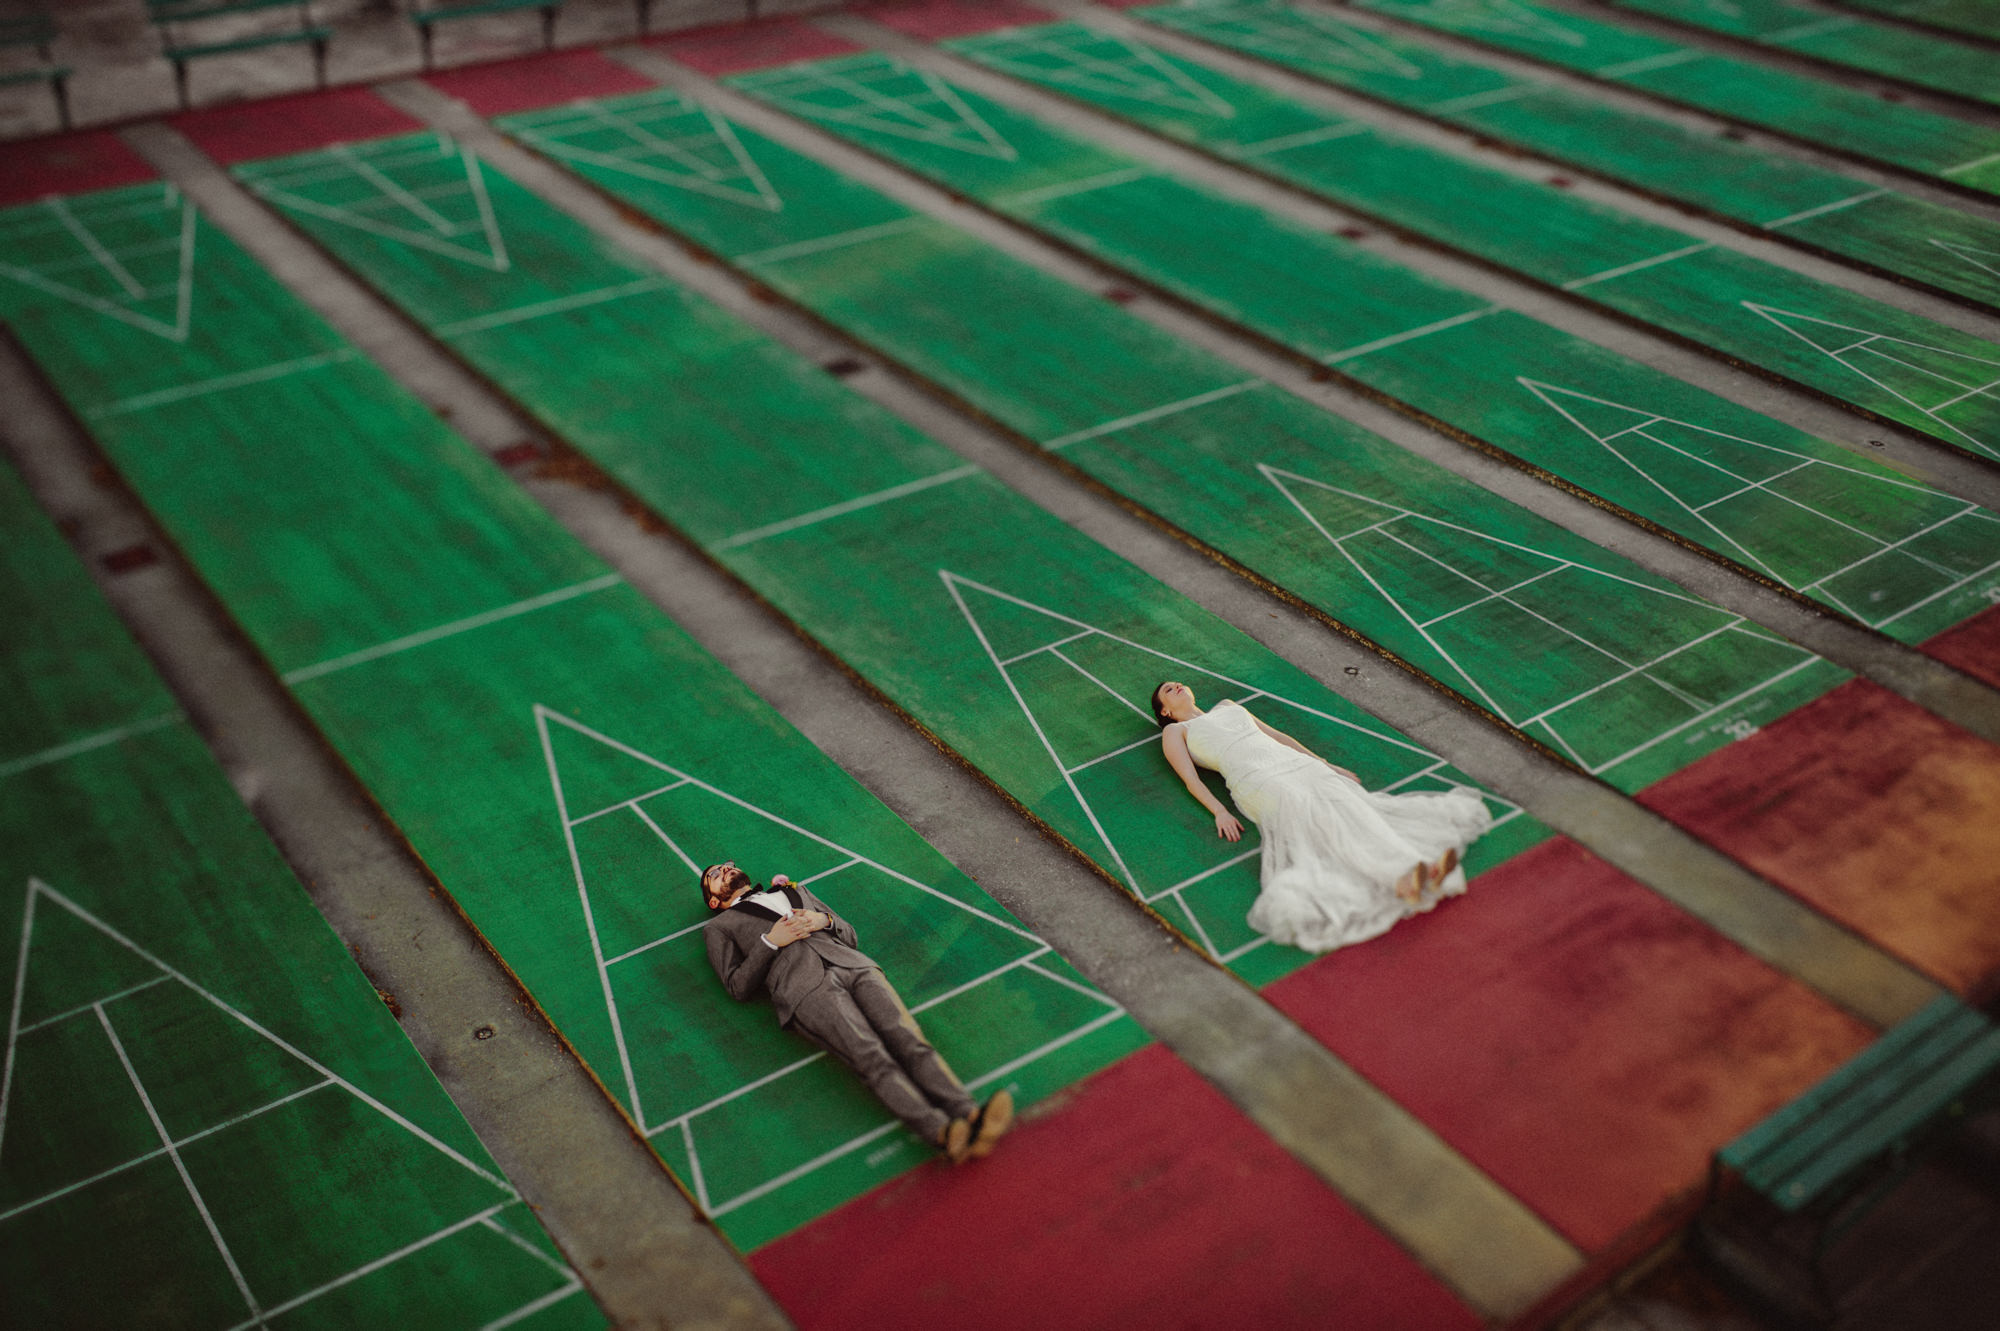 Bride and groom lying on bowling green by Fer Juaristi